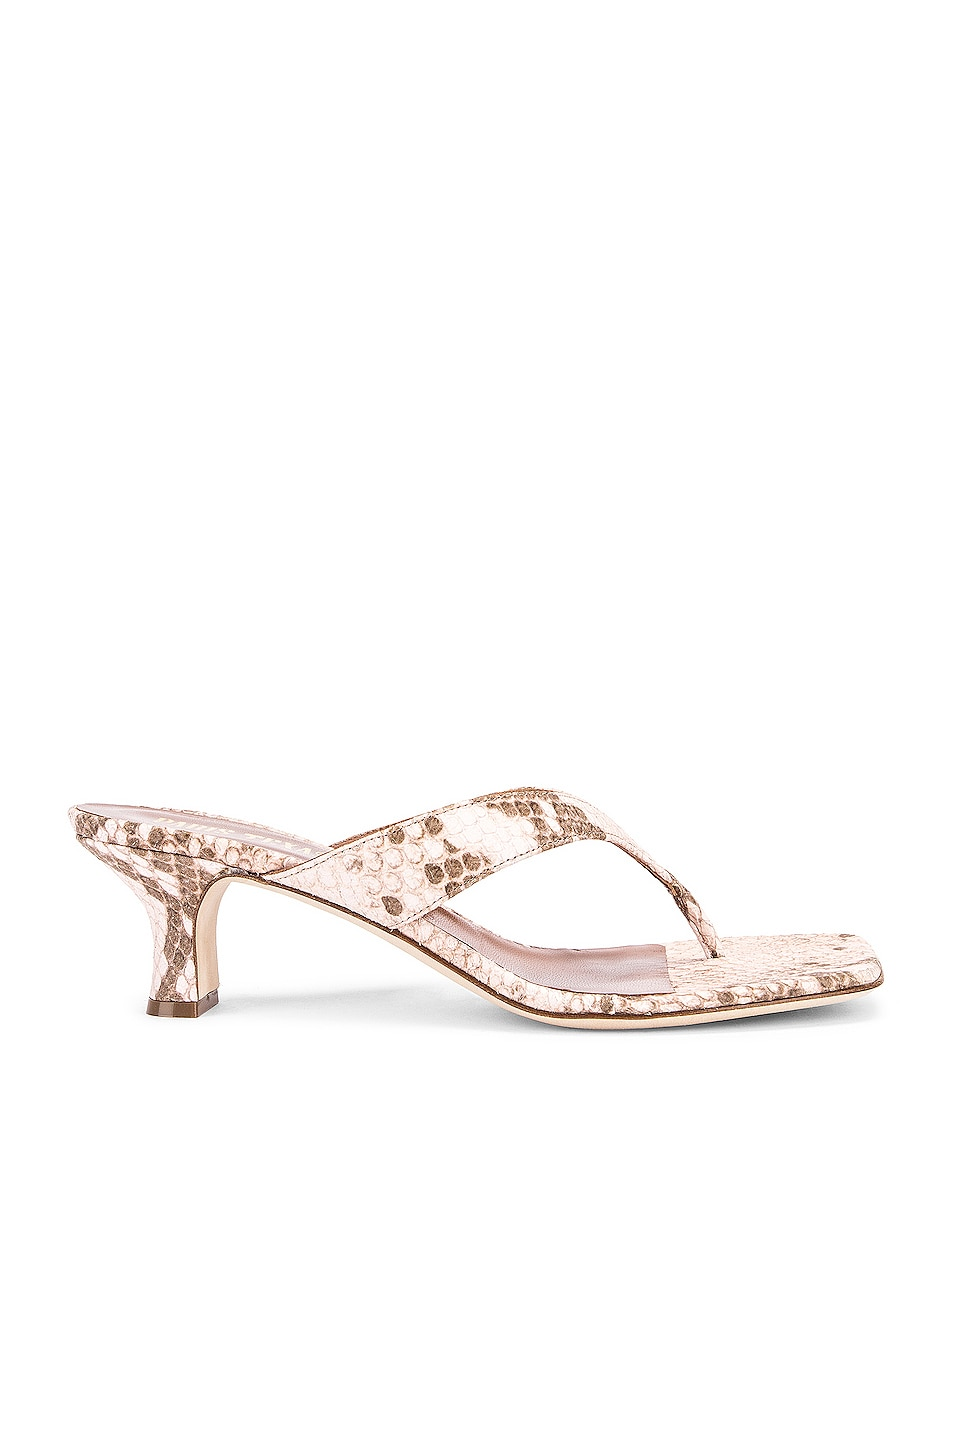 Image 1 of Paris Texas Faded Python Print 45 Thong Sandal in Faded Pink